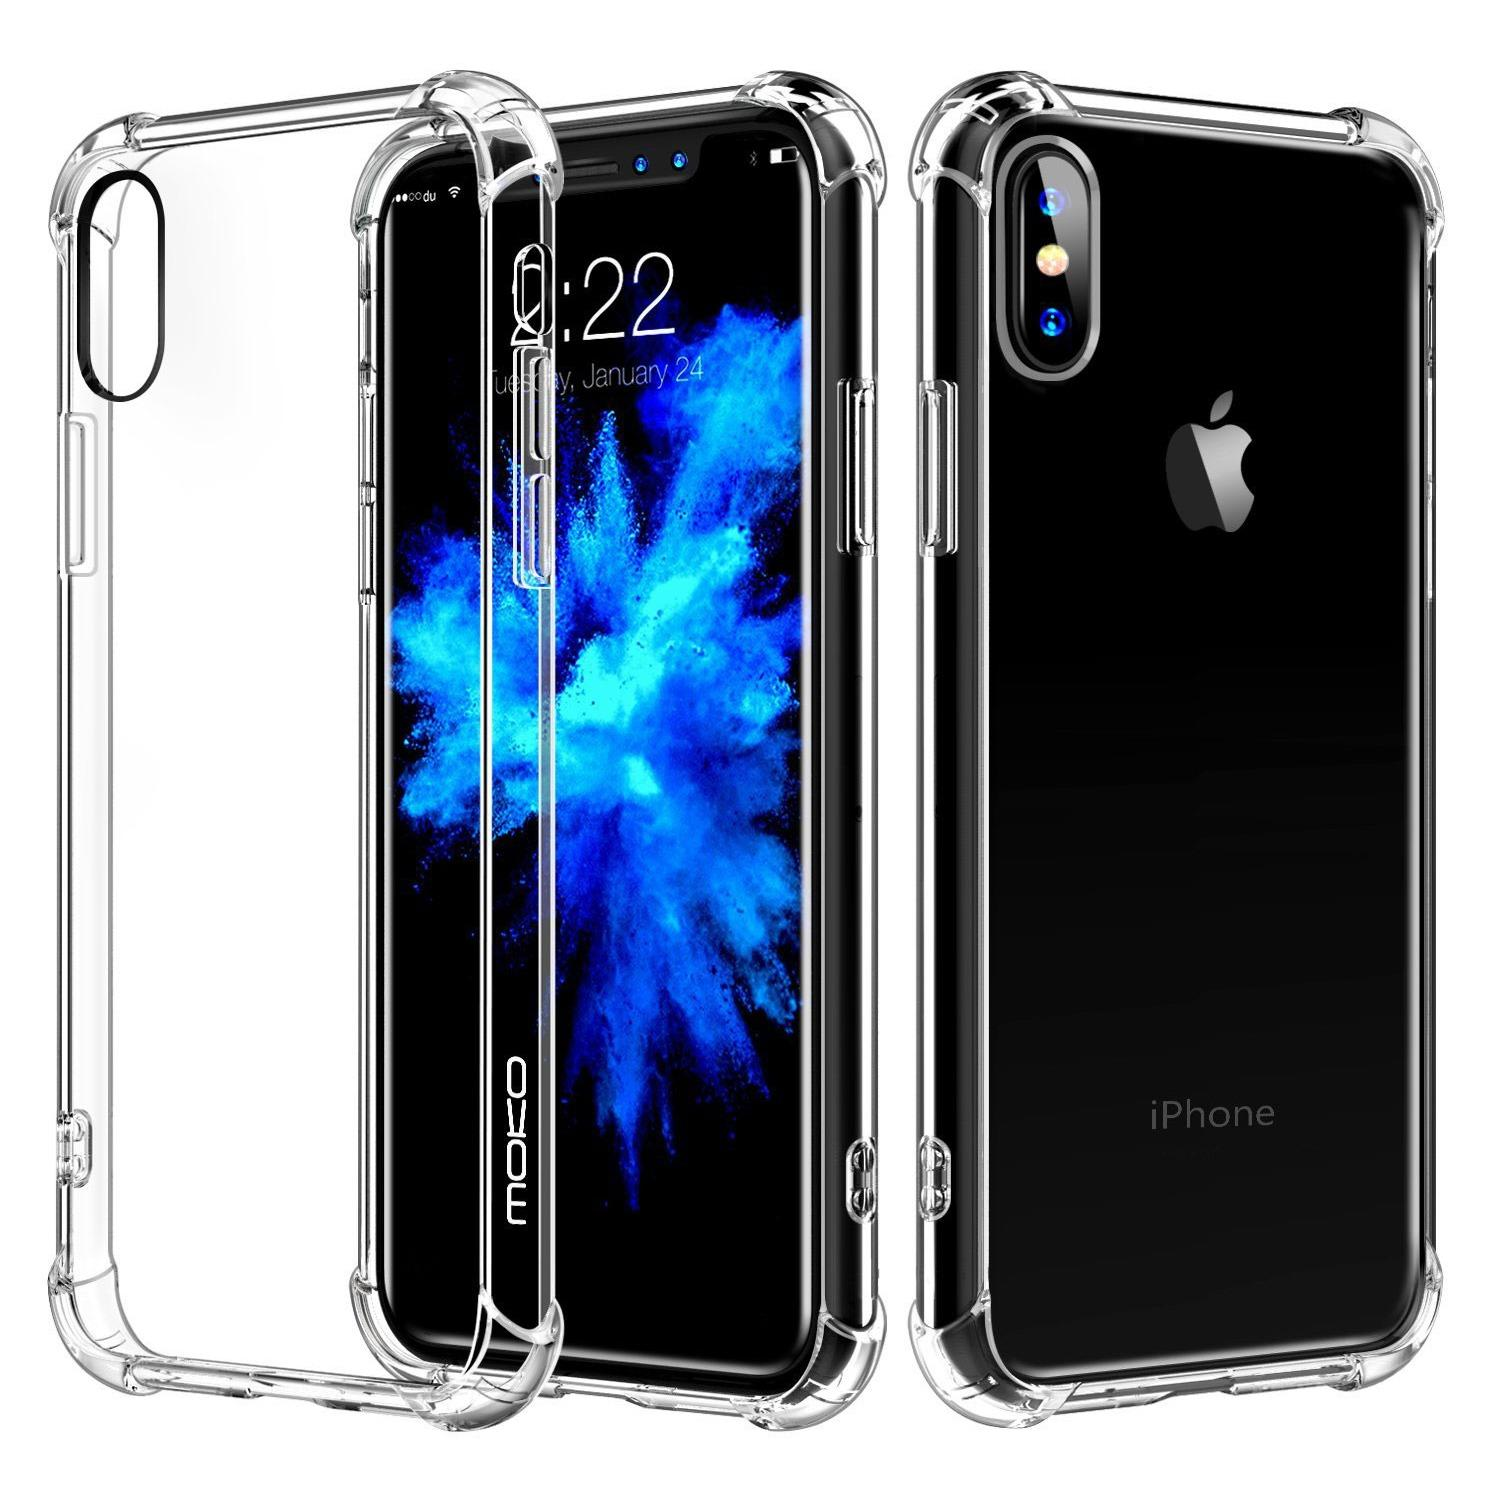 sports shoes 0d249 dc92c Iphone 7 Plus Tempered Glass Privacy Screen Zagg price in Singapore